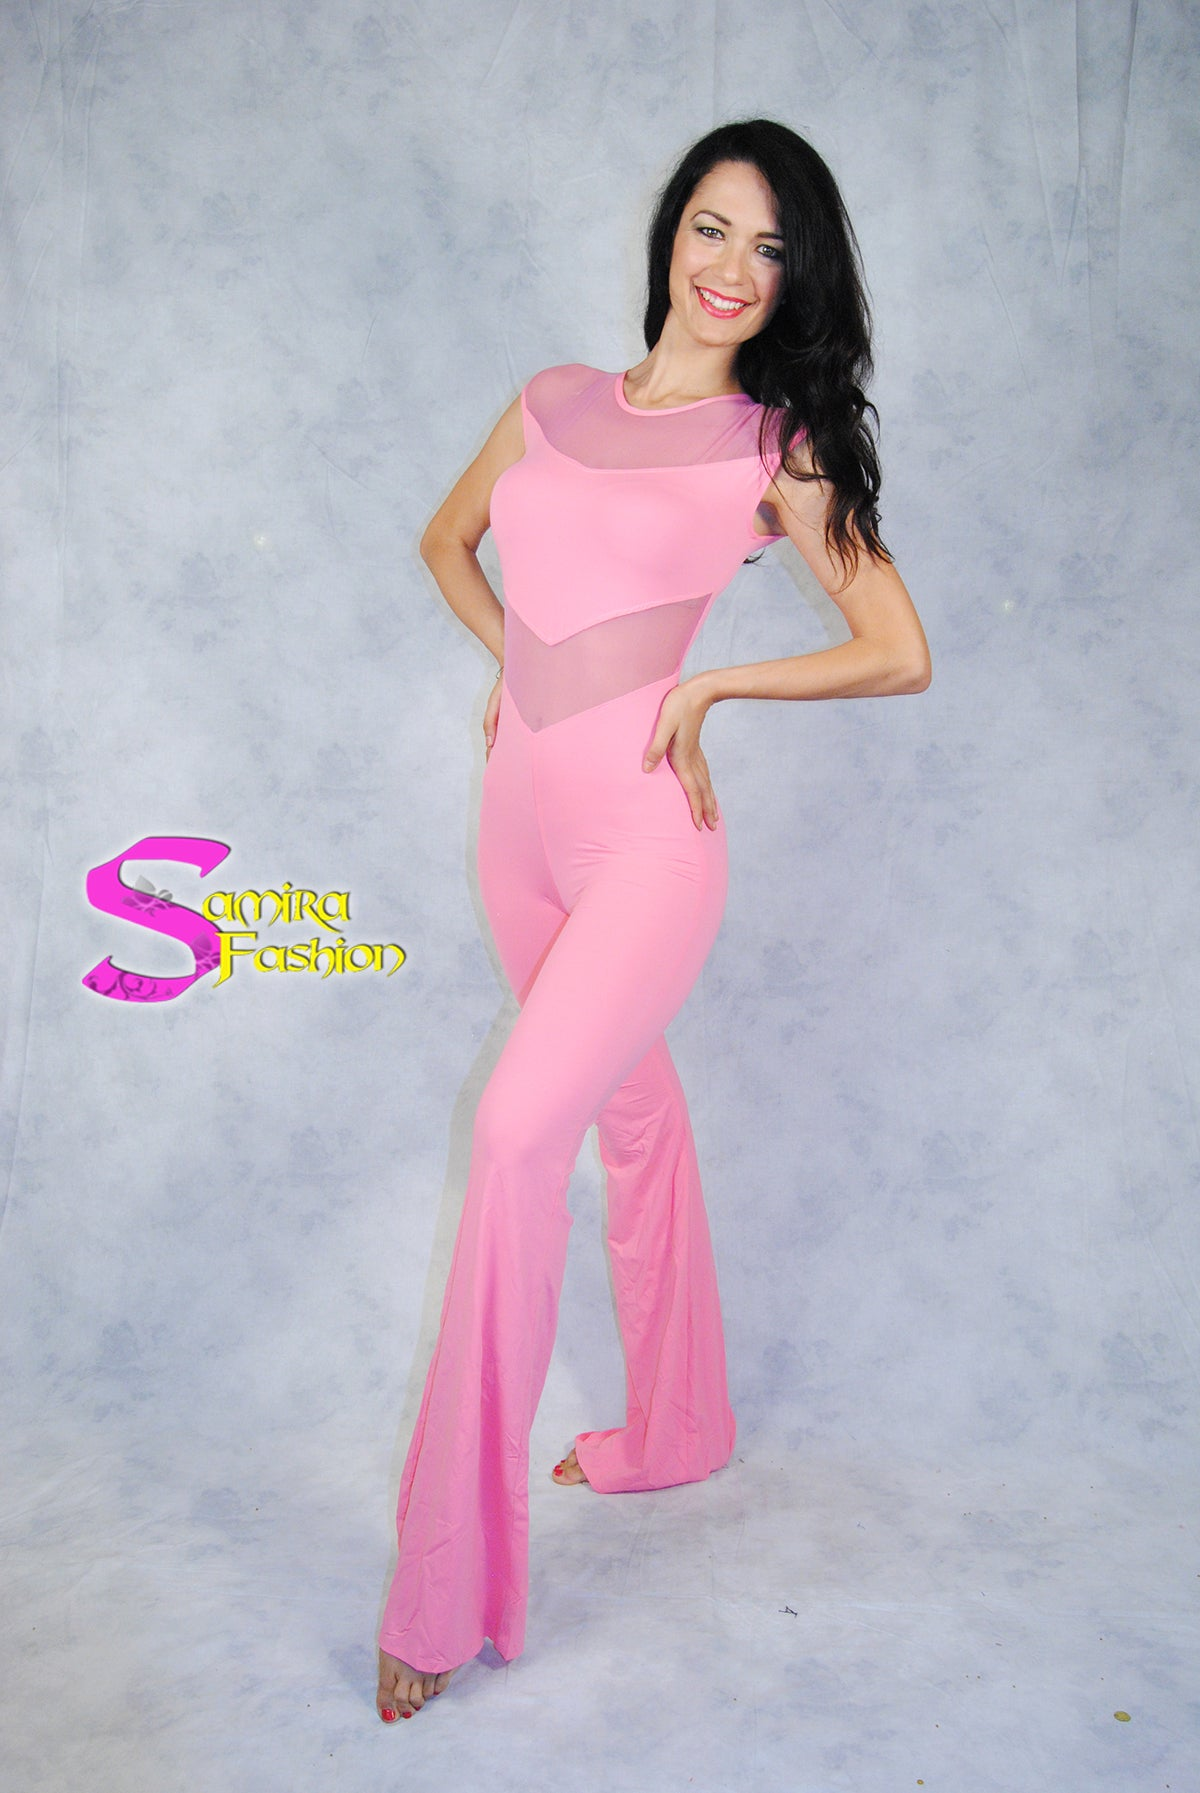 Catsuit Chic Rosa Pesca - Bellydance, Salsa